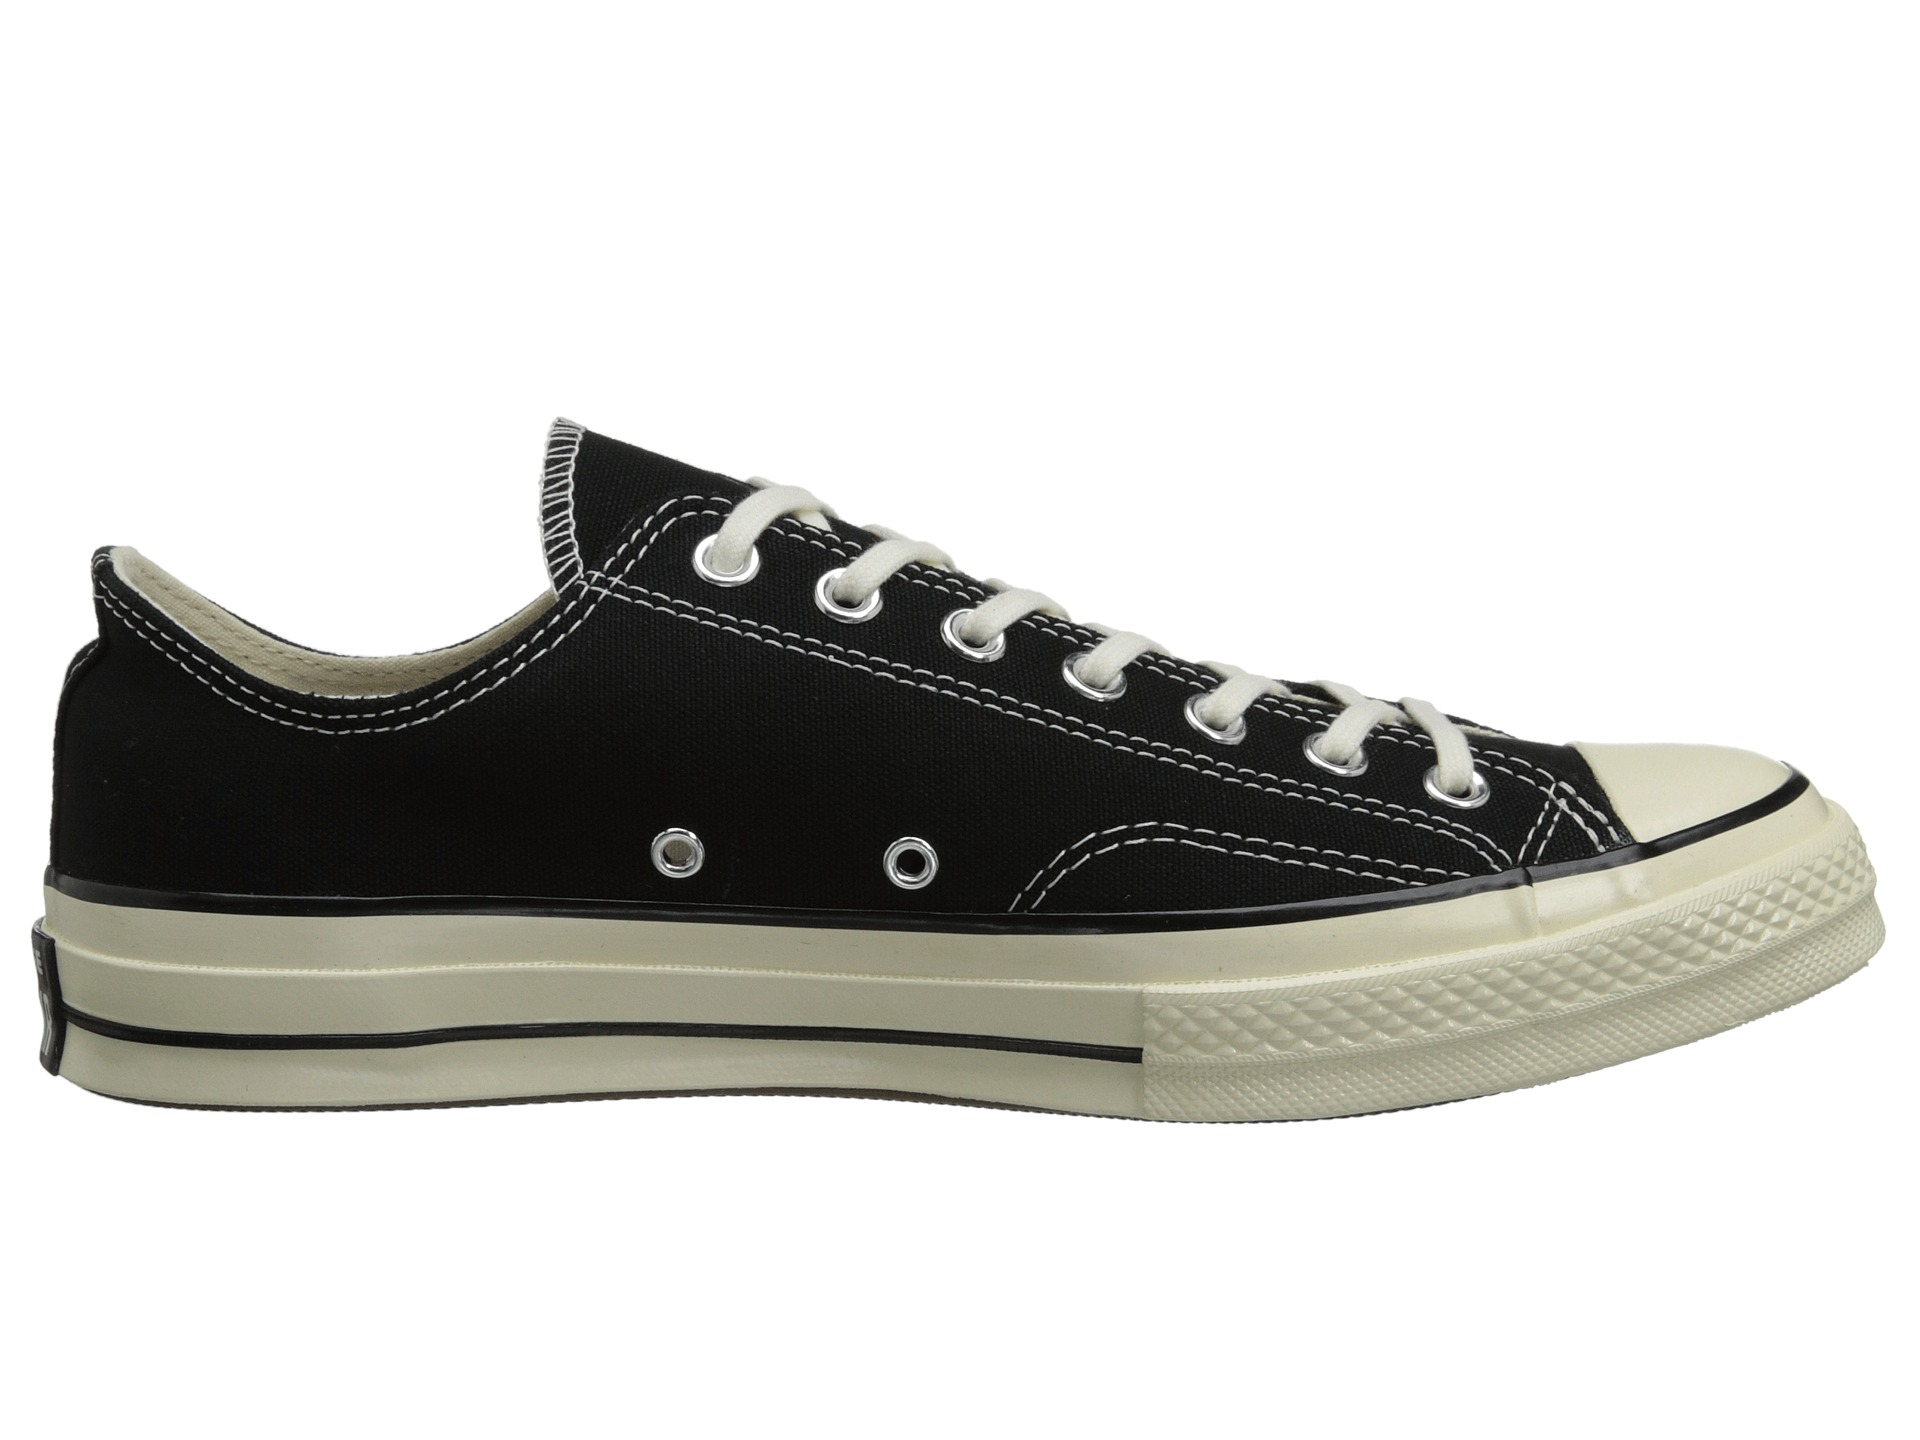 converse chuck taylor all star 39 70 ox at. Black Bedroom Furniture Sets. Home Design Ideas